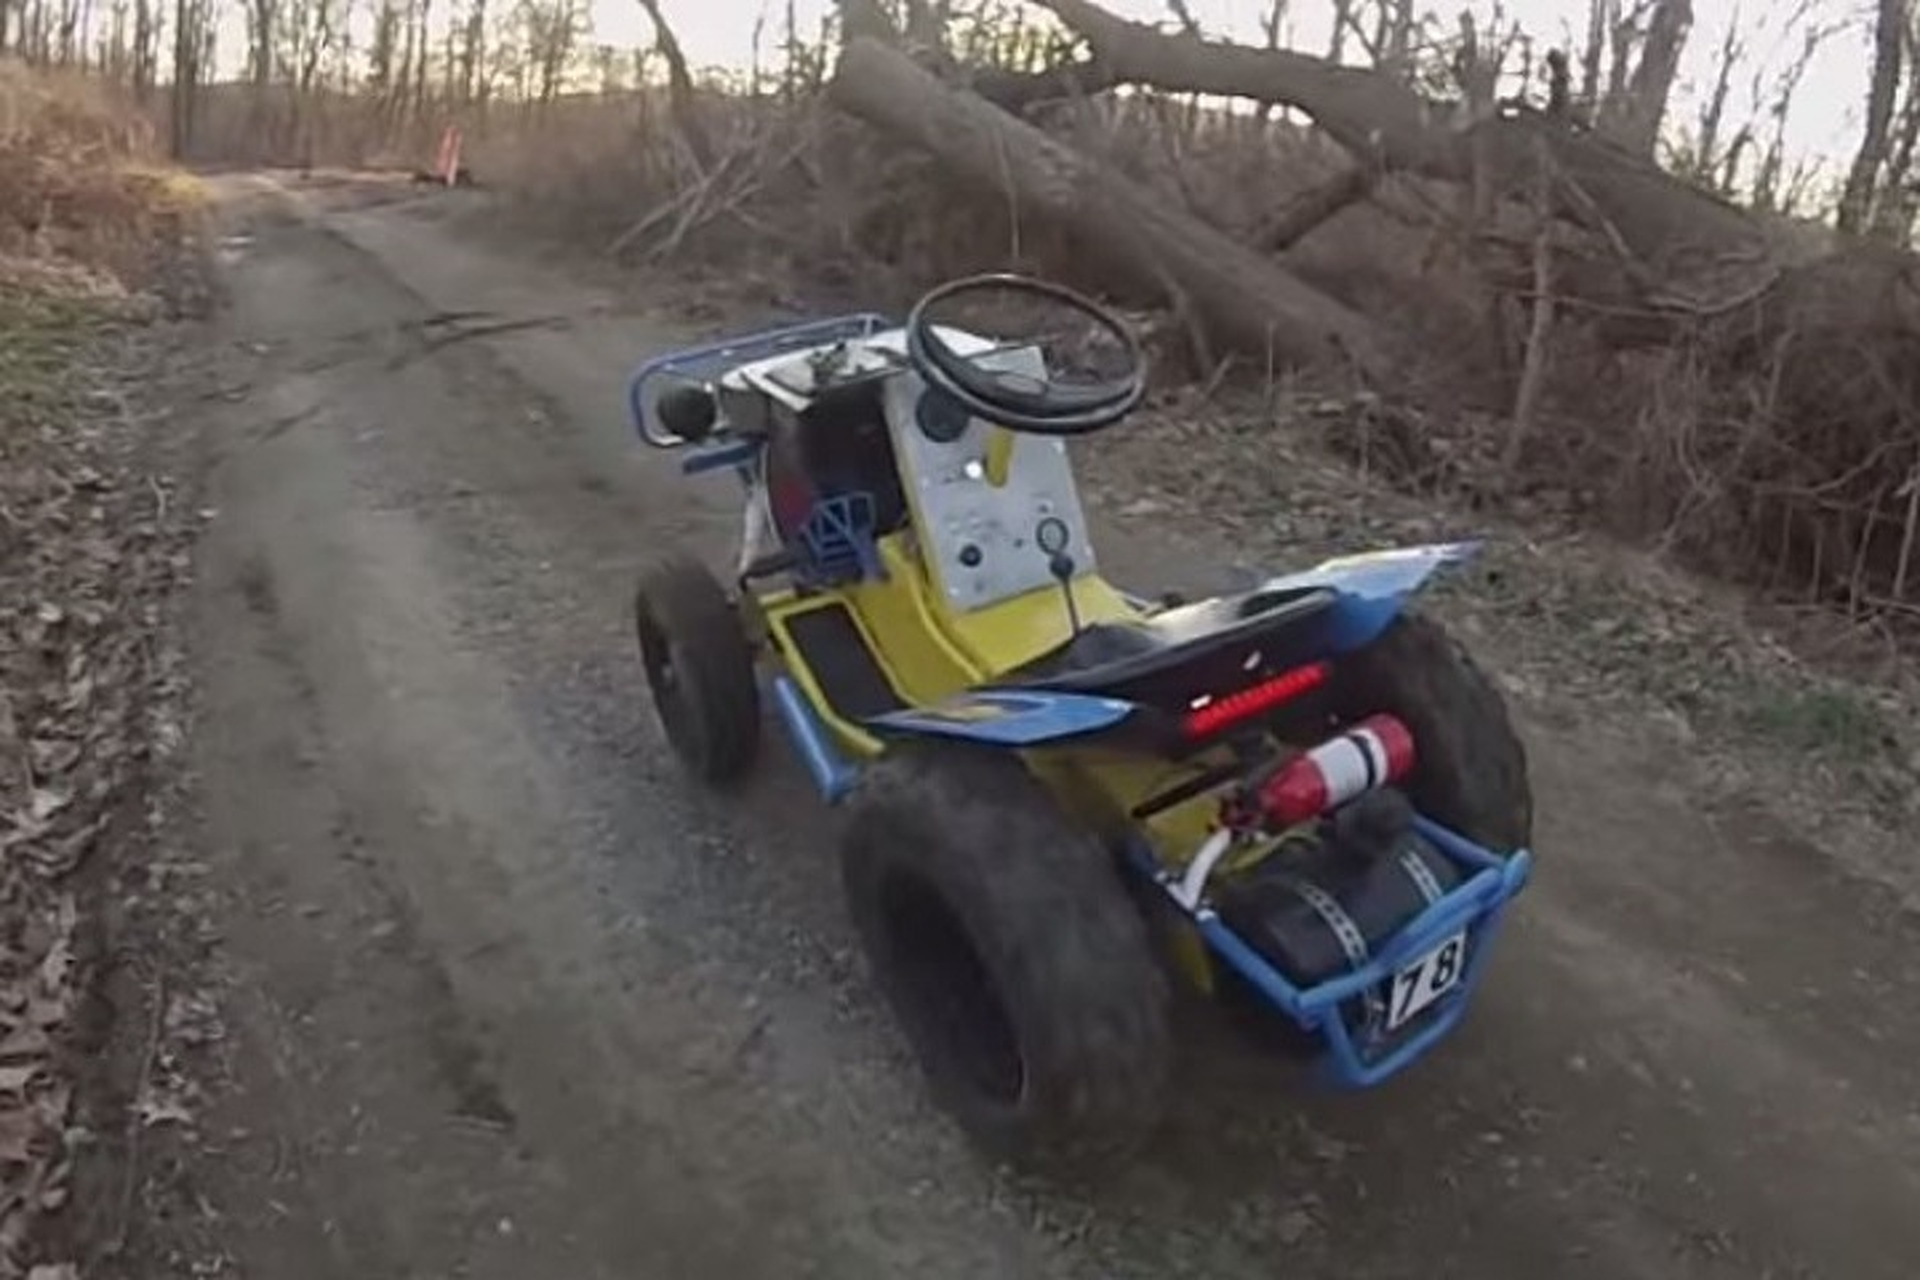 Watch This Insane Homemade Baja Tractor in Action